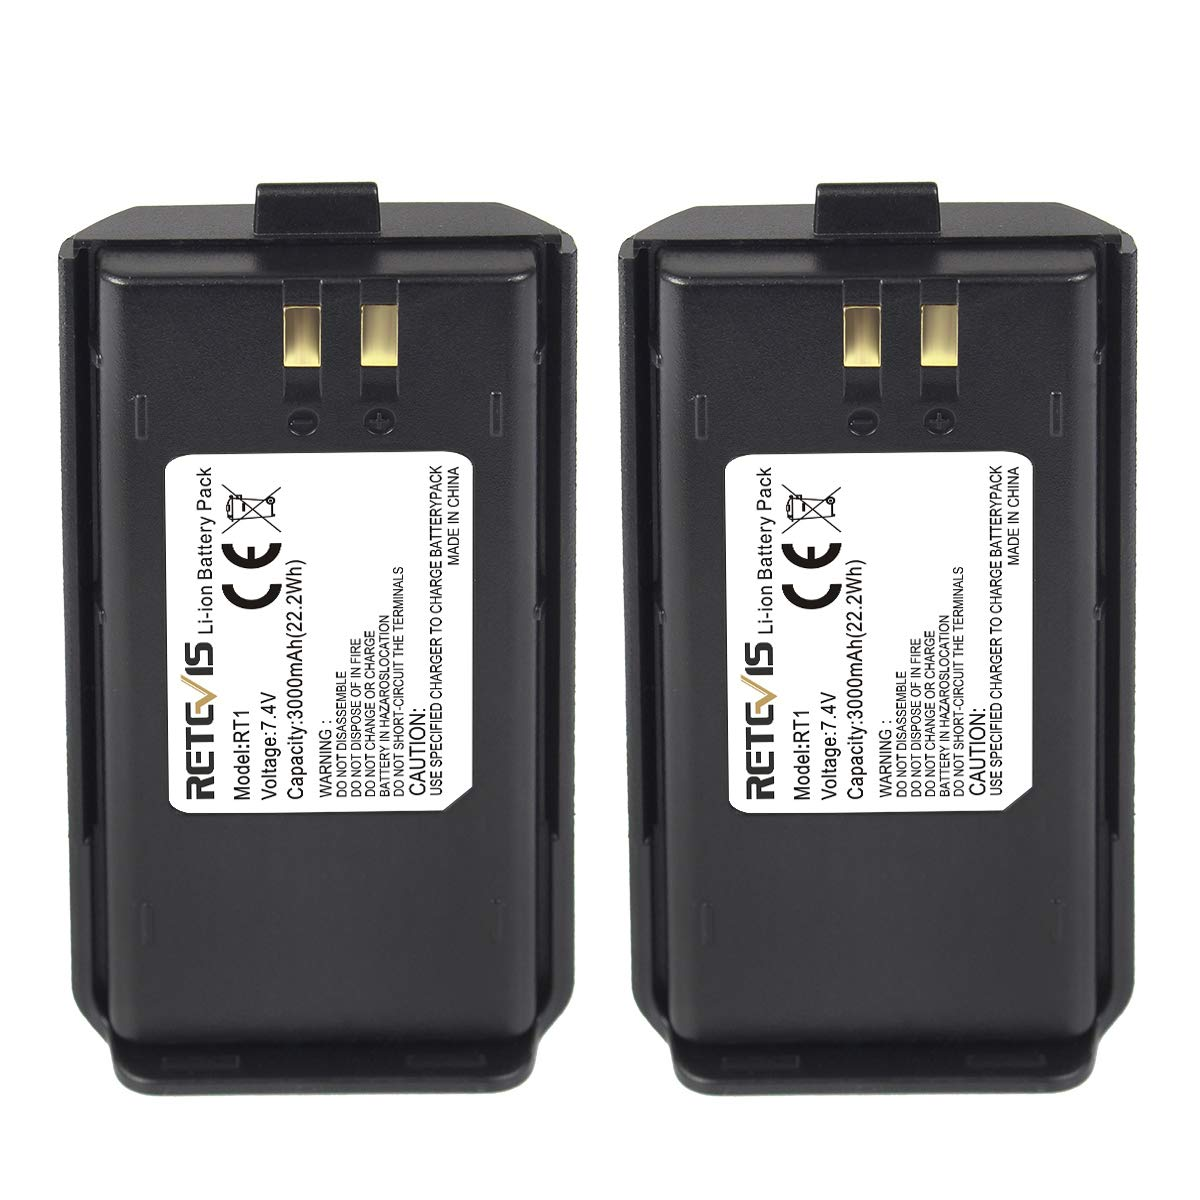 Retevis RT1 Two Way Radio Battery 3000mAh Original Li-ion Radio Battery Compatible with TYT Tytera TC-3000A RT1 Walkie Talkie (2 Pack)